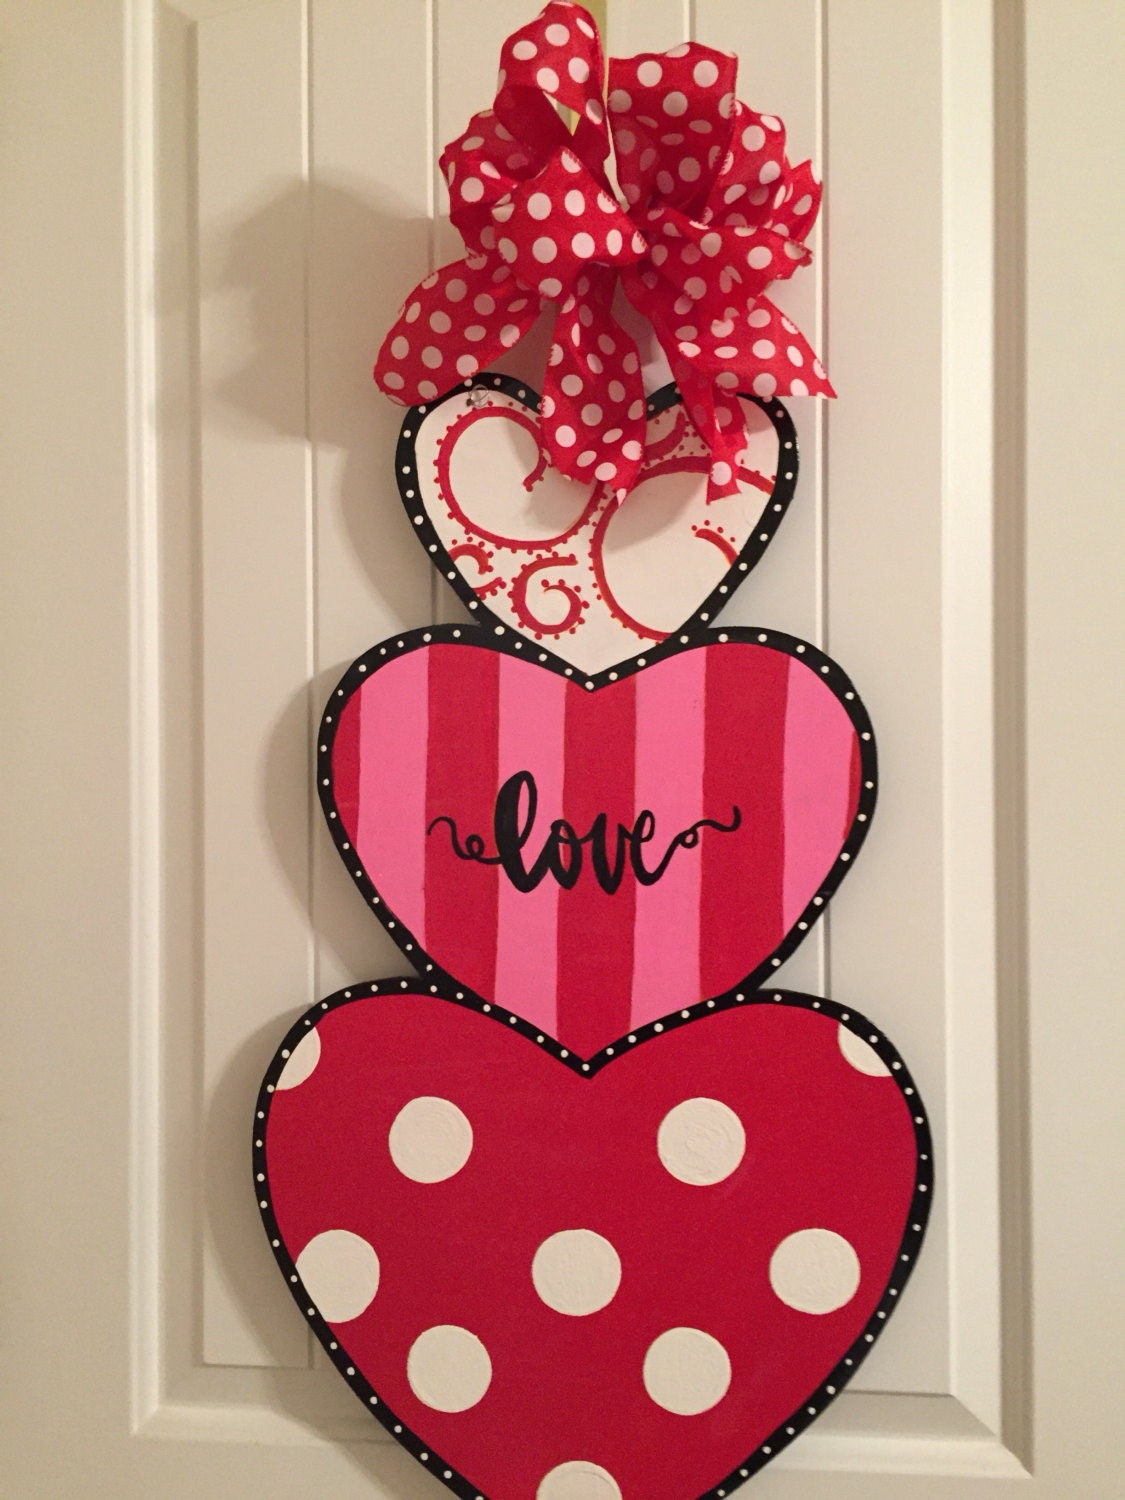 valentine door hanger valentine wreath stacked hearts heart door hanger valentine decor valentine door decor